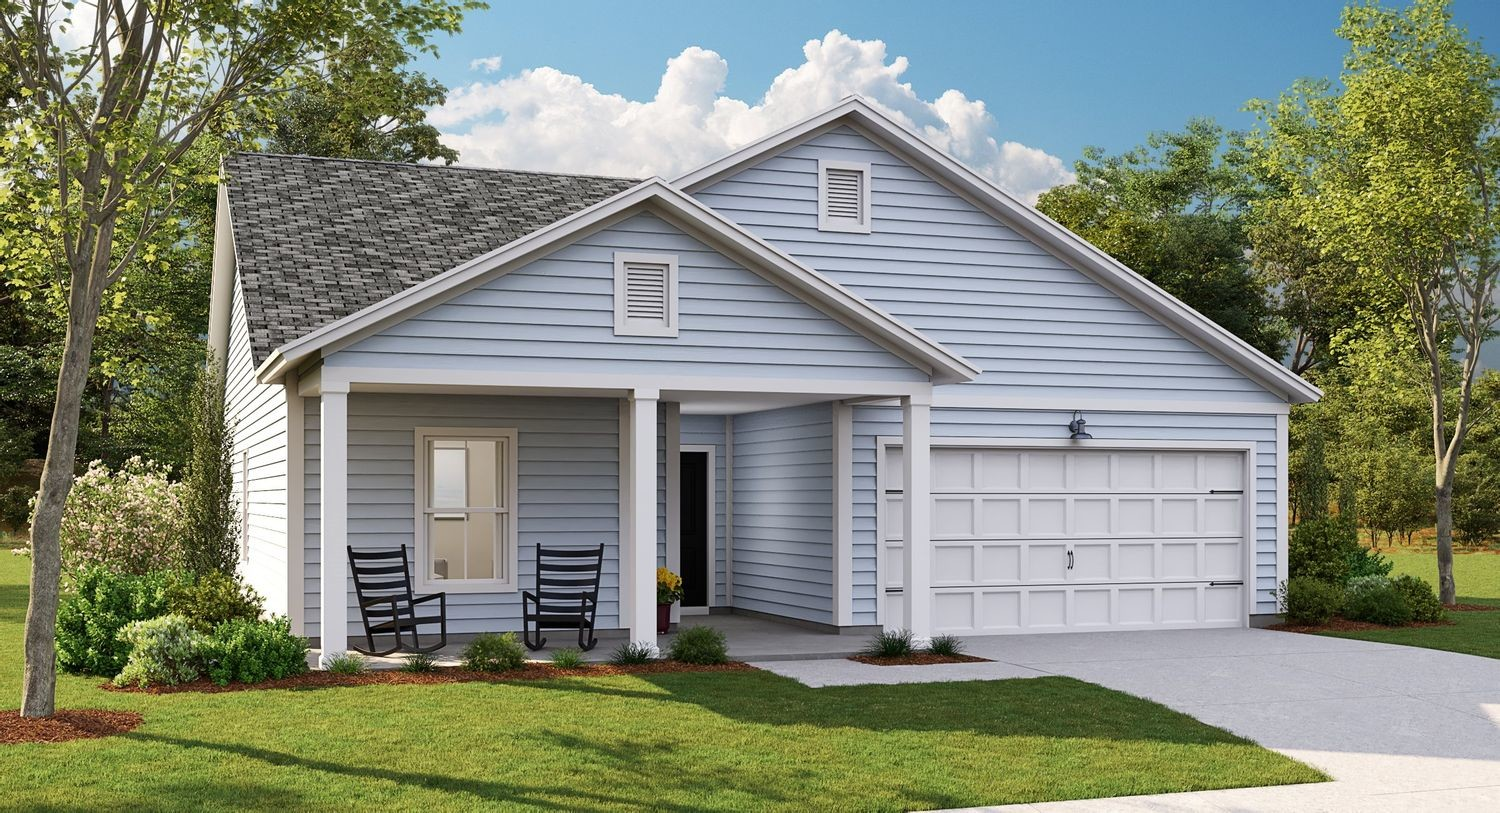 Ready To Build Home In Limehouse Village - Arbor Series Community